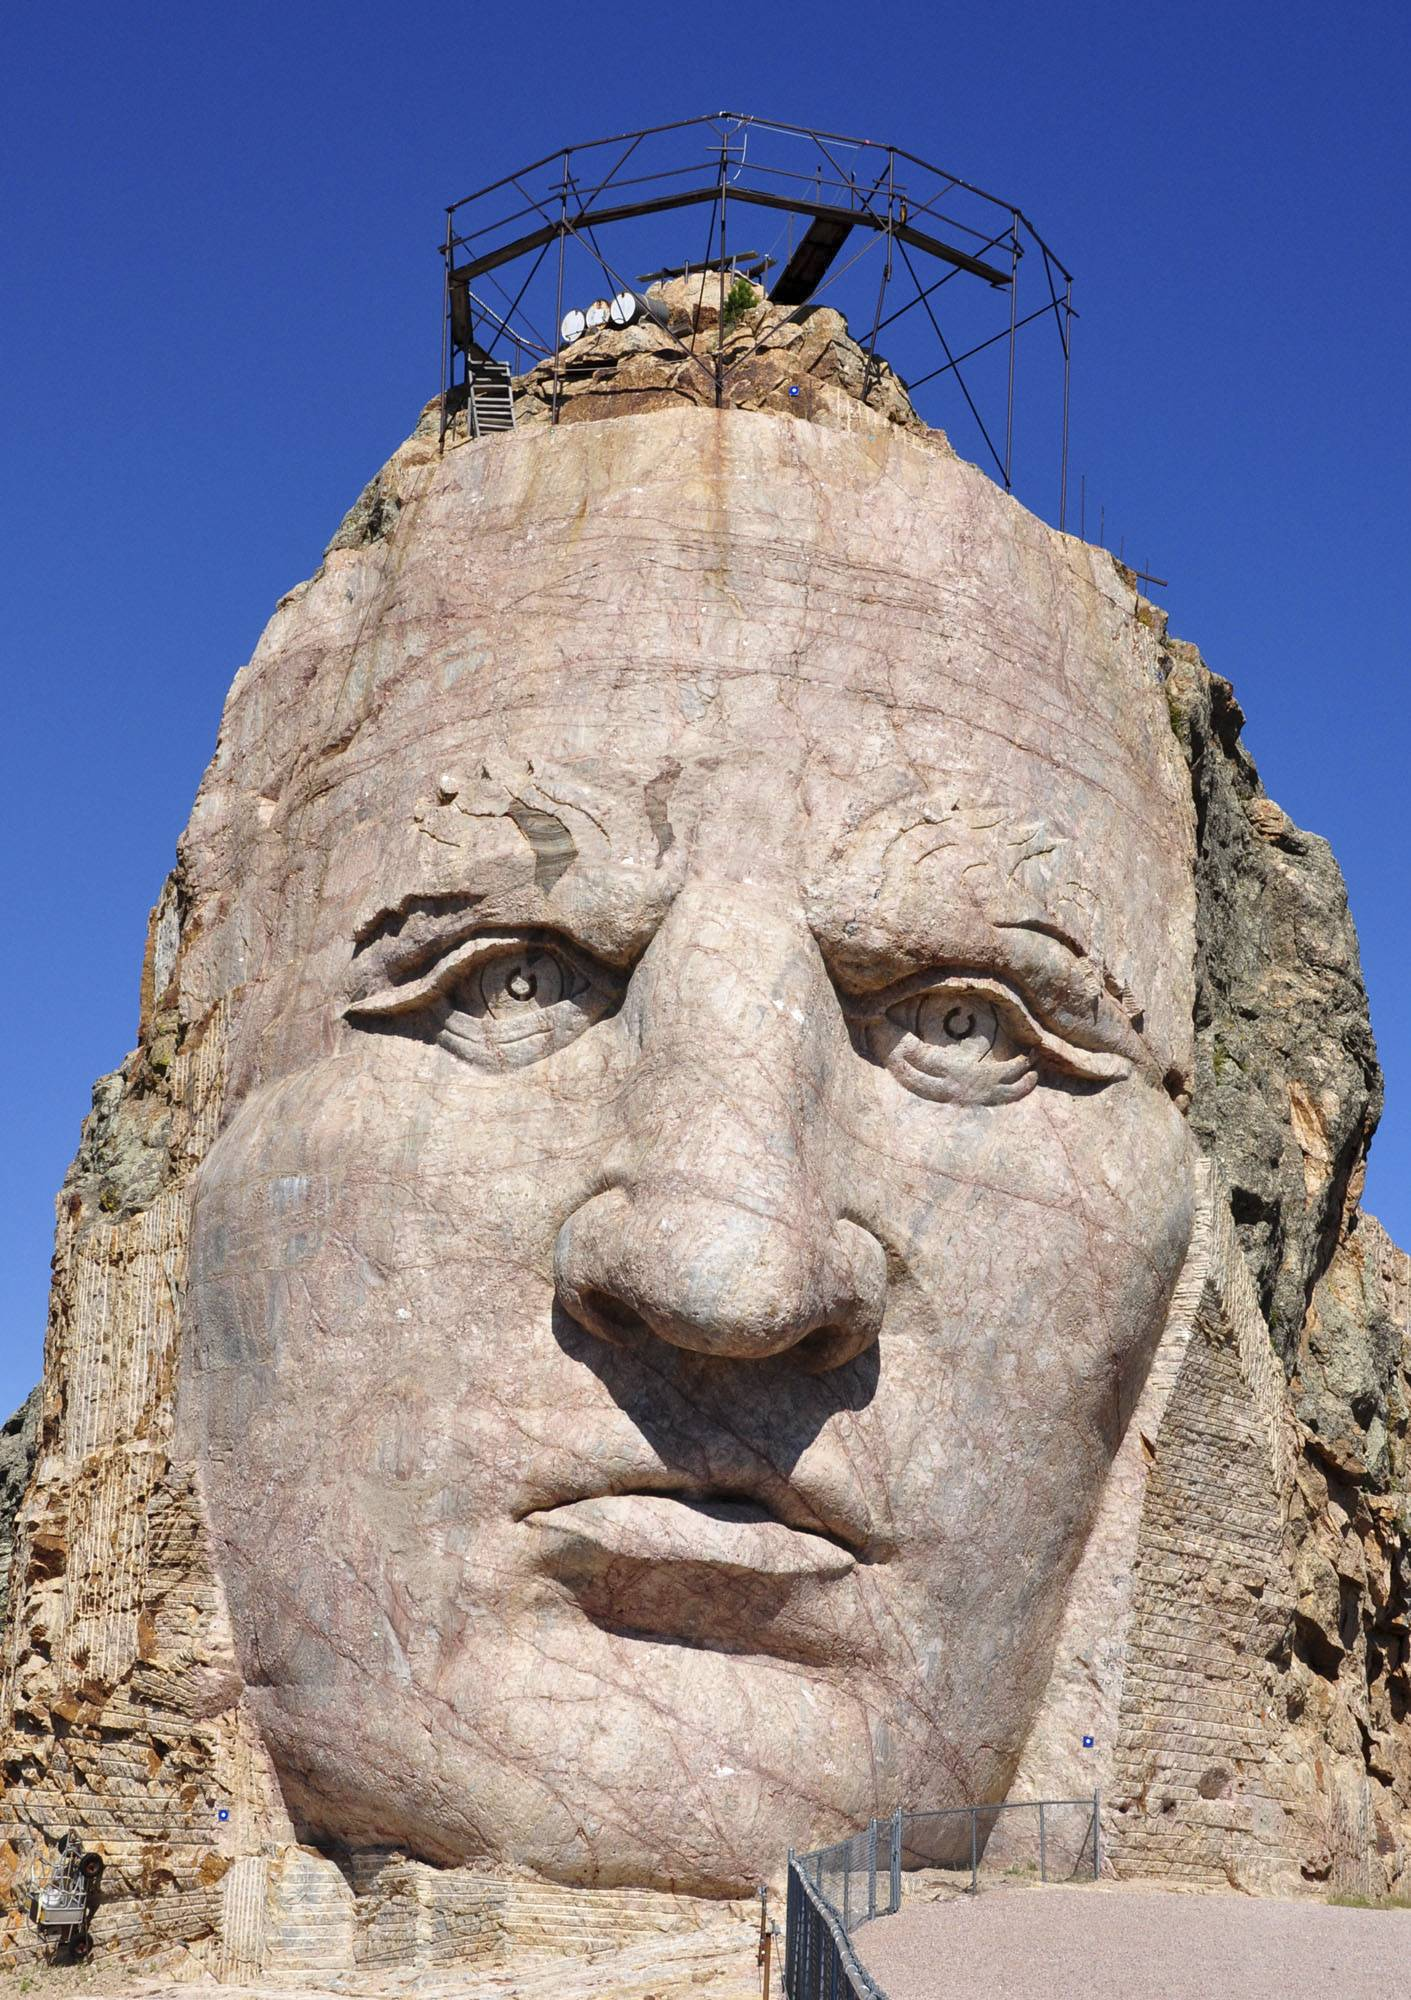 The 87-foot-6-inch tall face of the Crazy Horse mountain carving near Custer, S.D., remains slow going. But it will continue, even after the death of Ruth Ziolkowski, the widow of sculptor Korczak Ziolkowski and president and chief executive of the memorial.